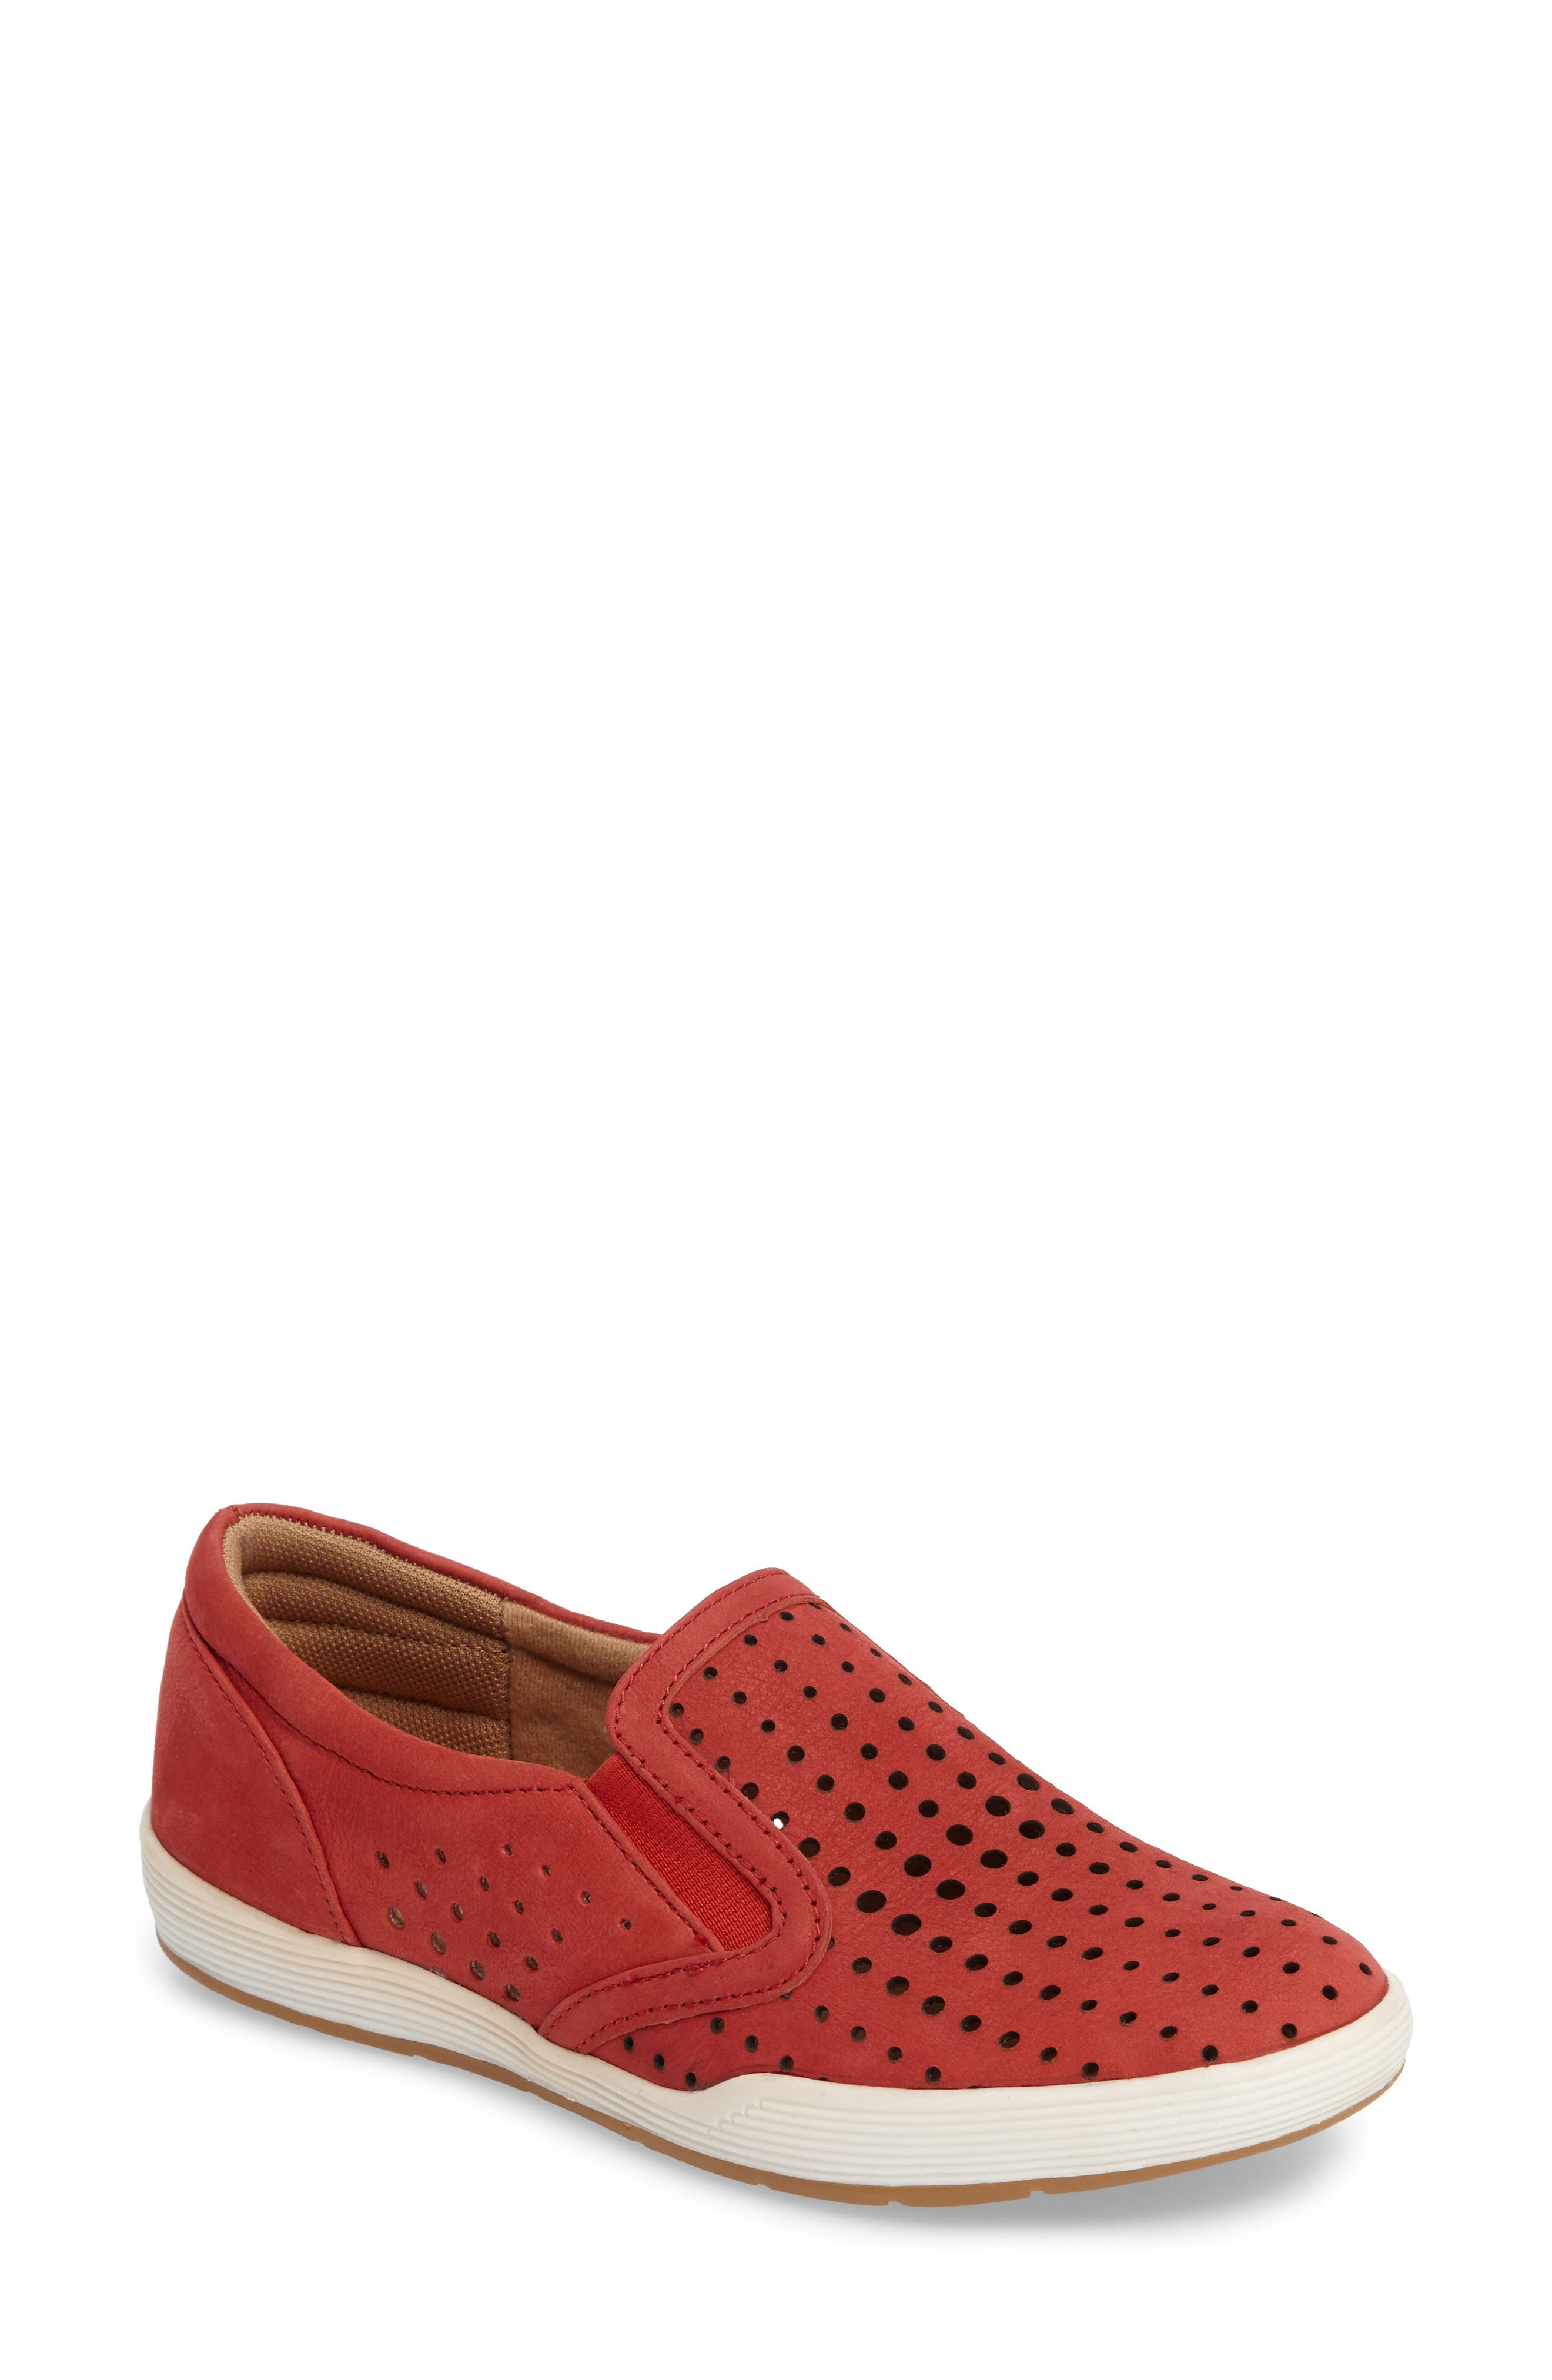 Comfortiva Lyra Perforated Slip-On Sneaker- Red